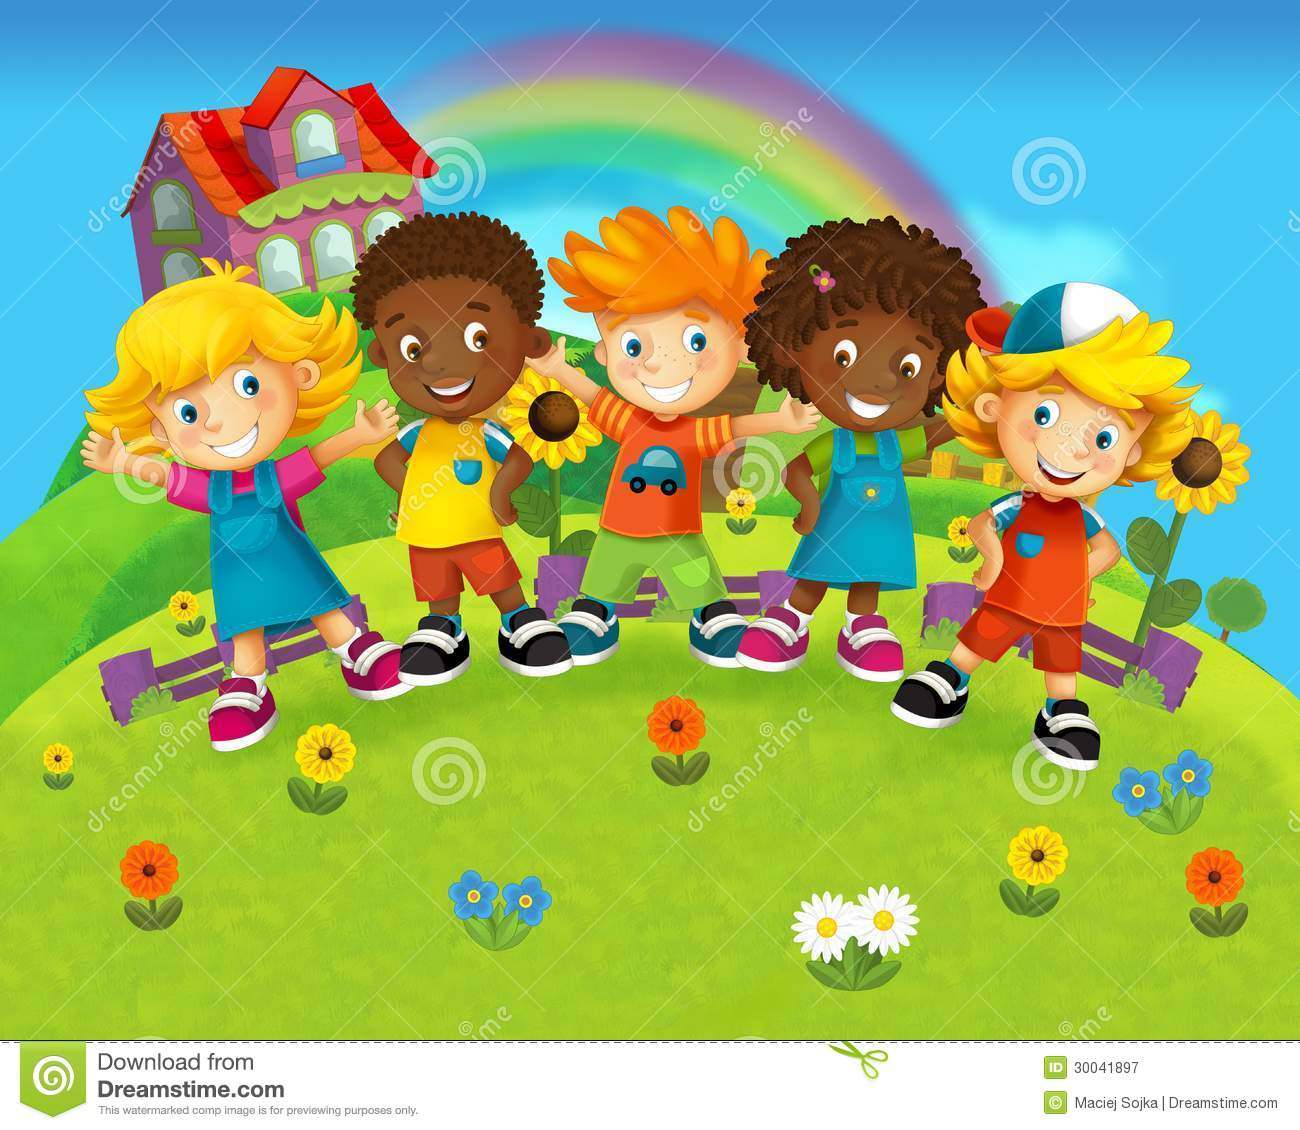 The Group Of Happy Preschool Kids - Colorful Illustration For The ...